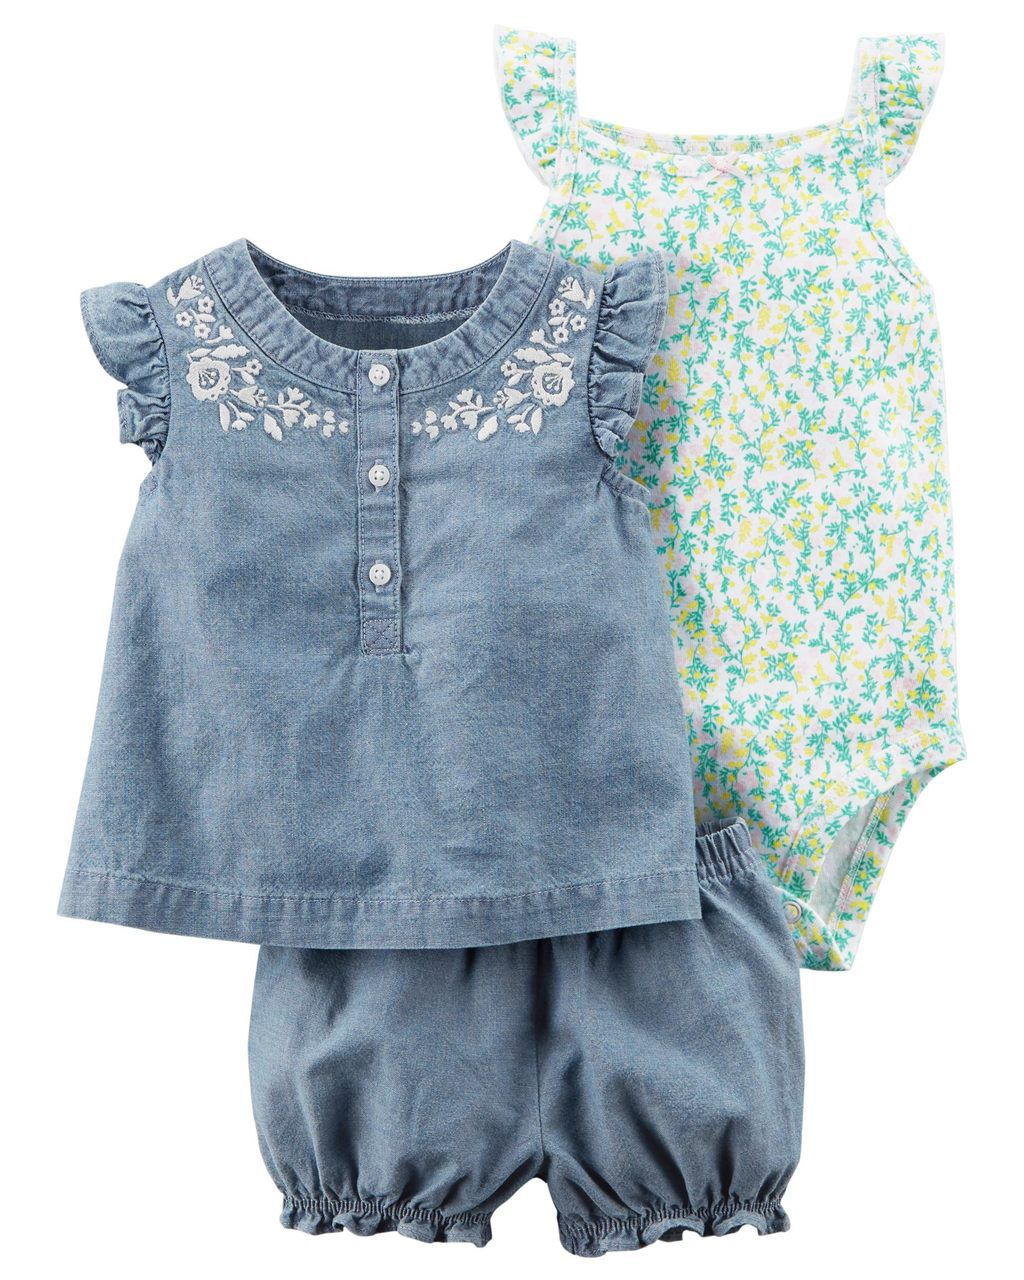 Trio Jeans Carters